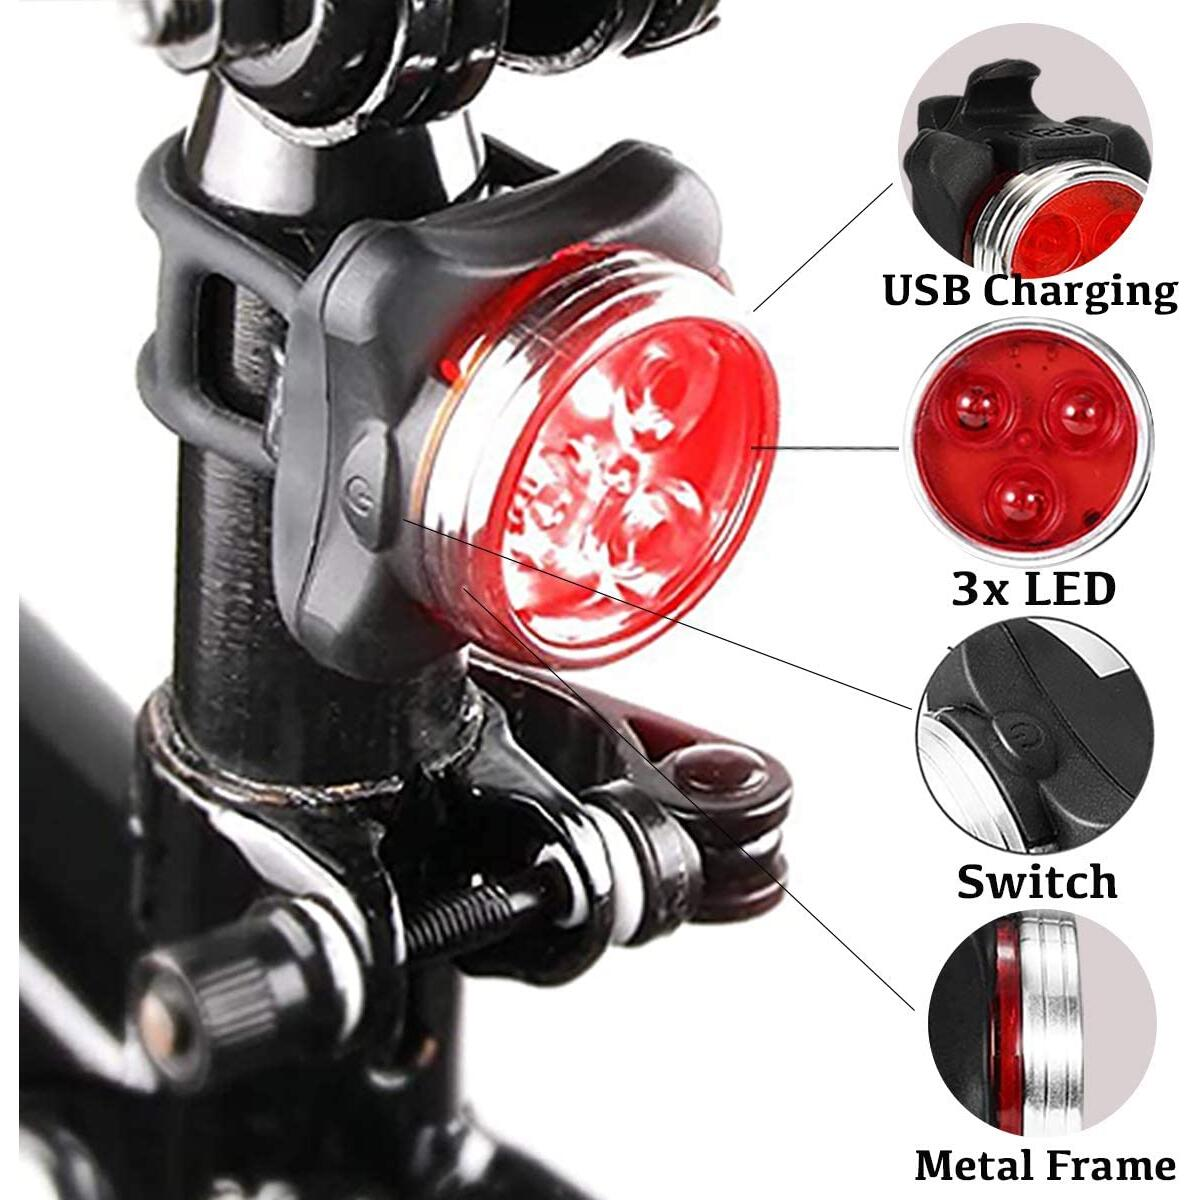 APREMONT Compact Bike Headlight and Tail Light Set - USB Led Rechargeable Bike Lights Front and Back - Super Bright Bike Light - Safety Cycling Light - for Road, Mountain Cycling, Skateboard, Helmet